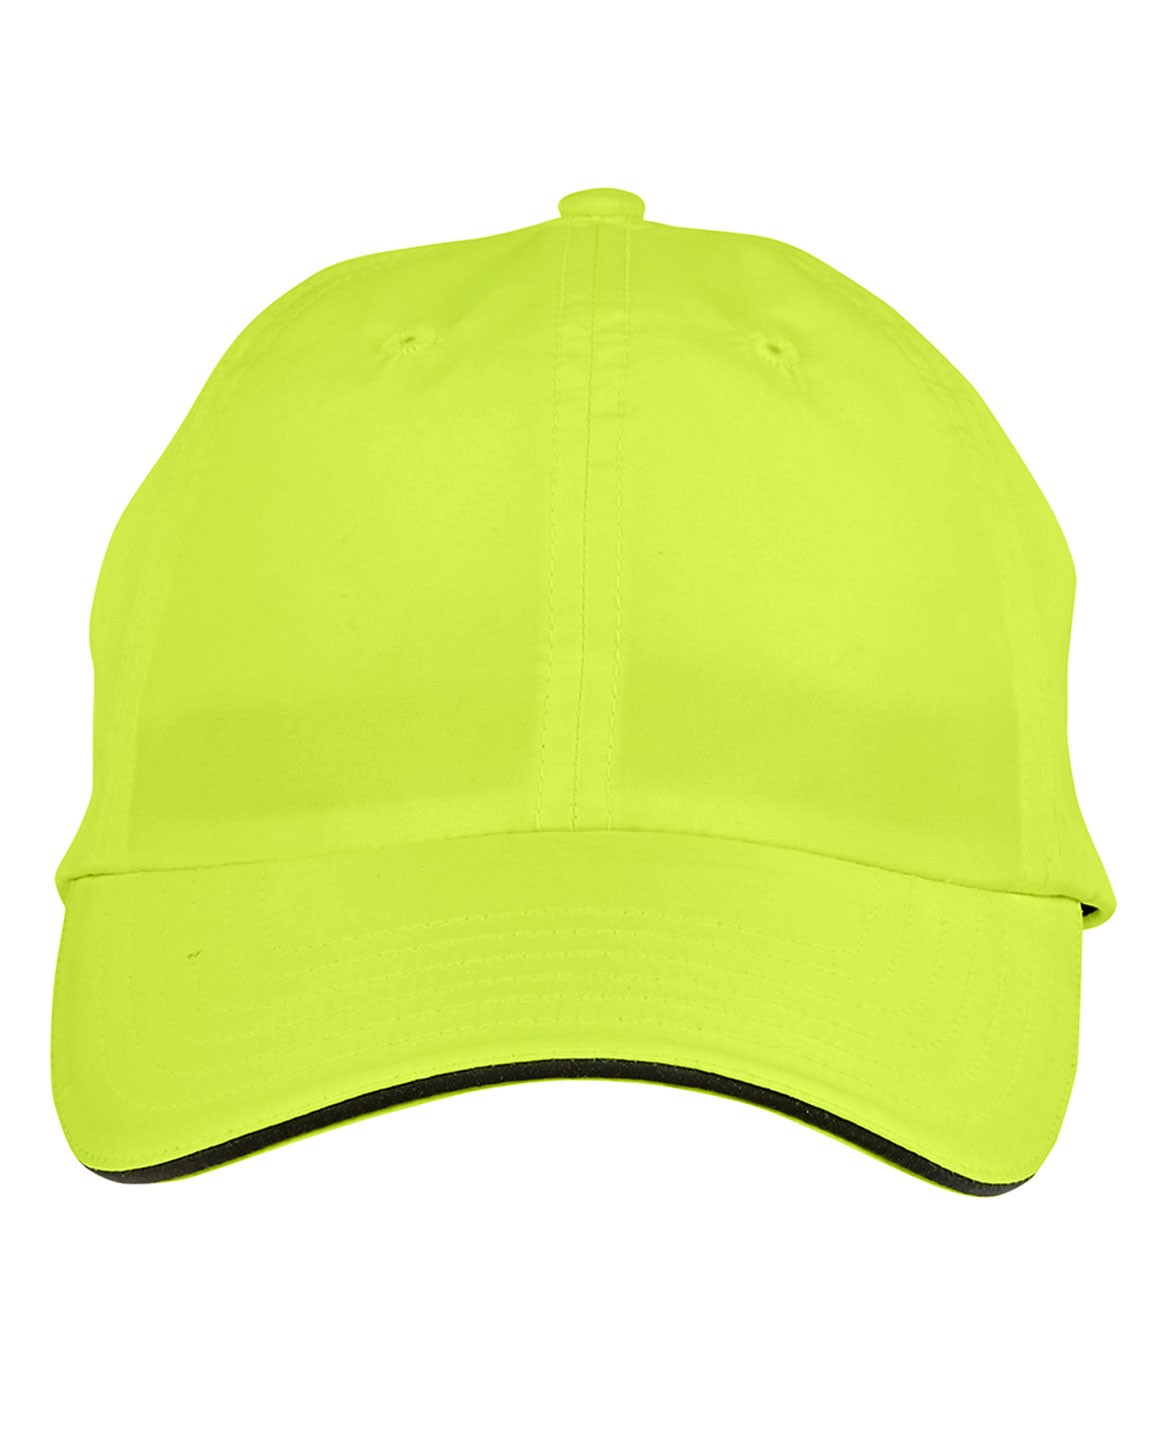 Core365 CE001 Adult Pitch Performance Cap